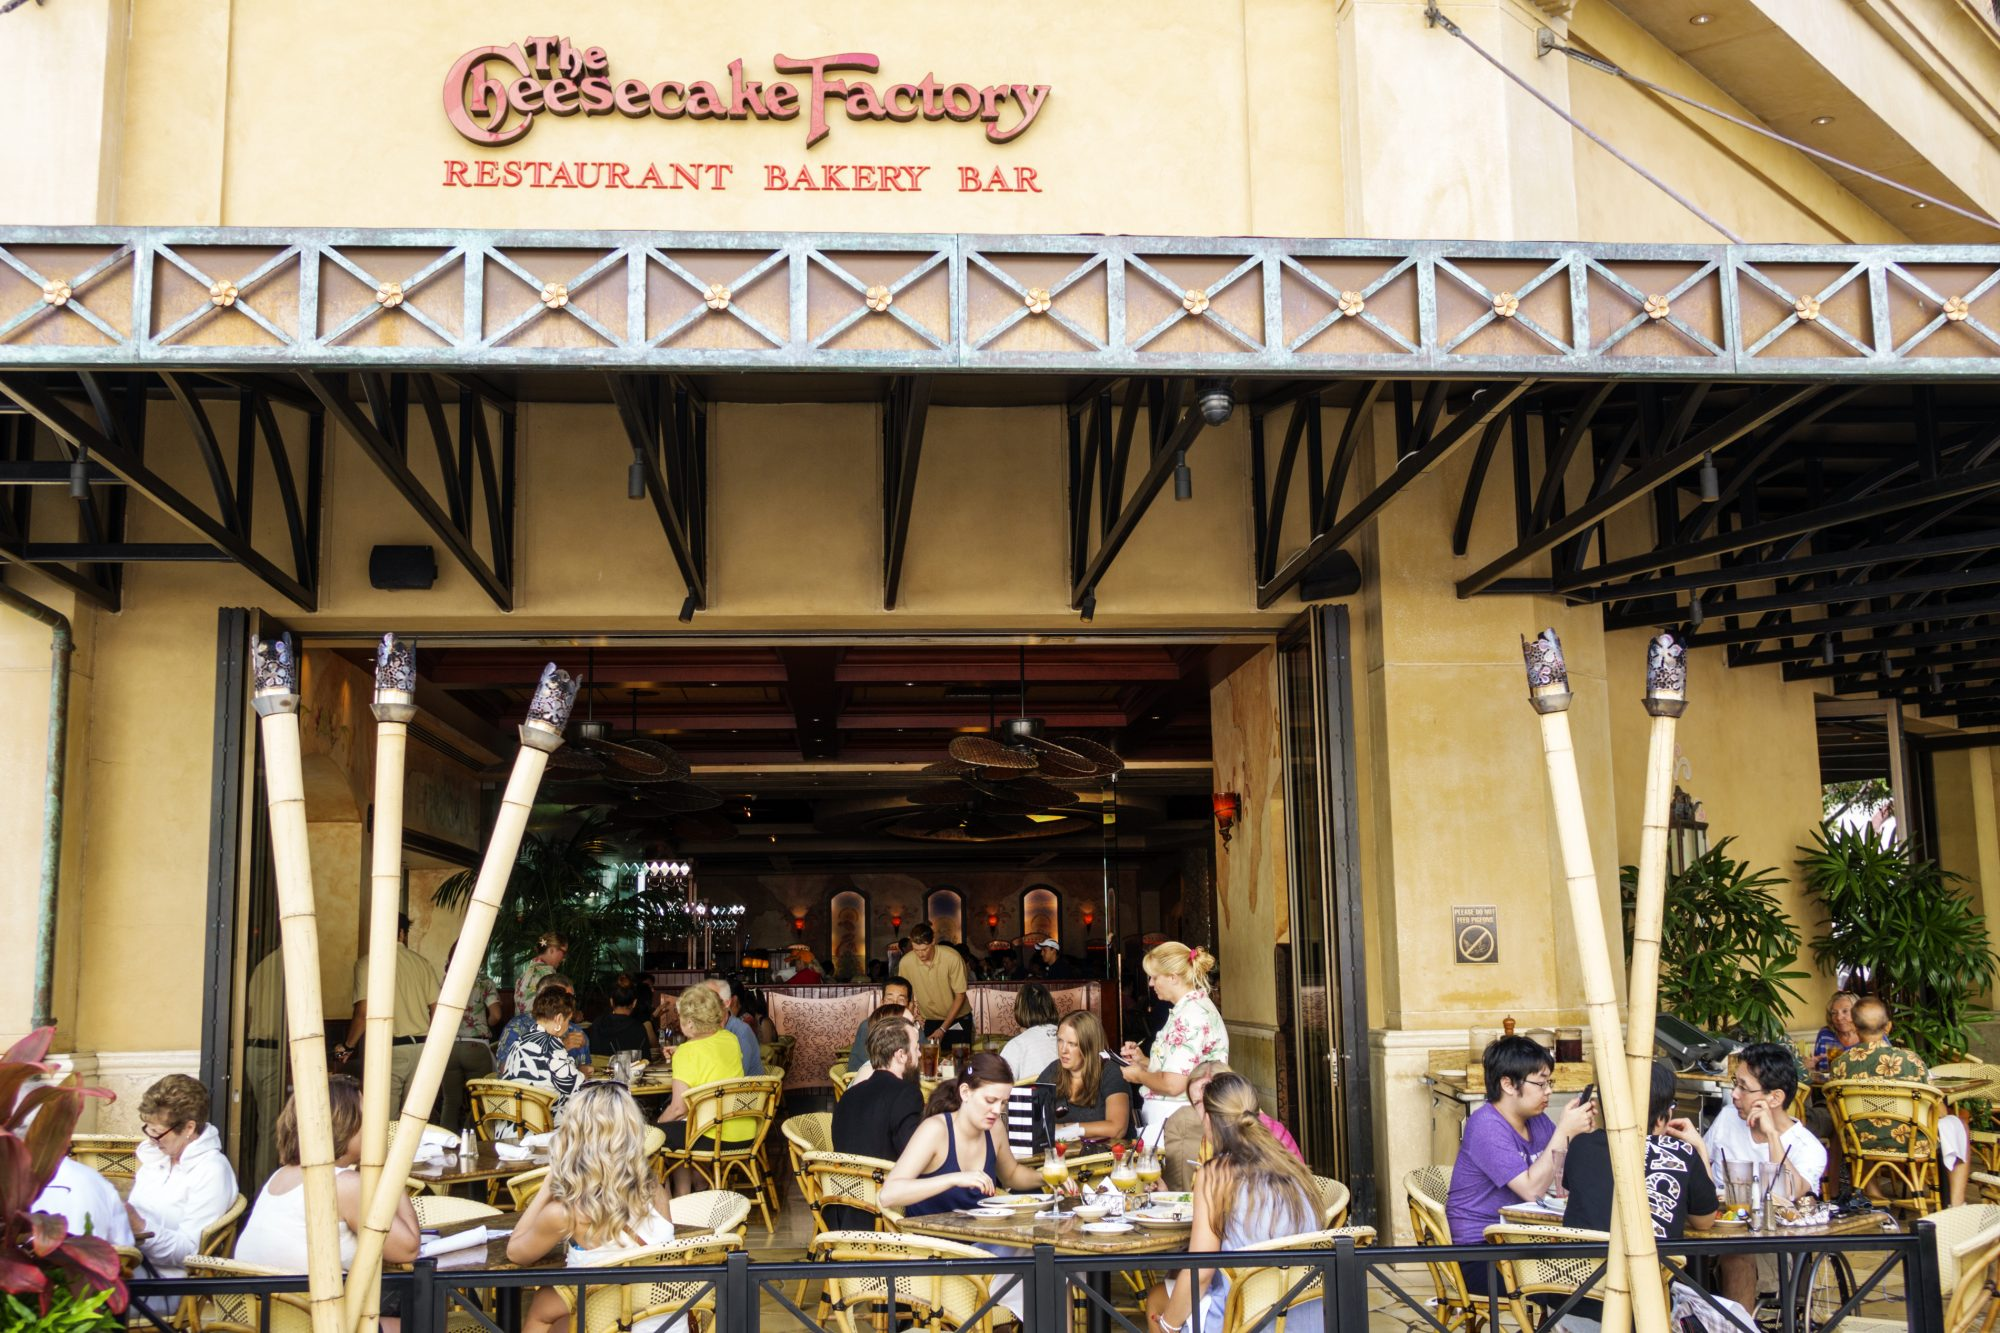 The Cheesecake Factory.